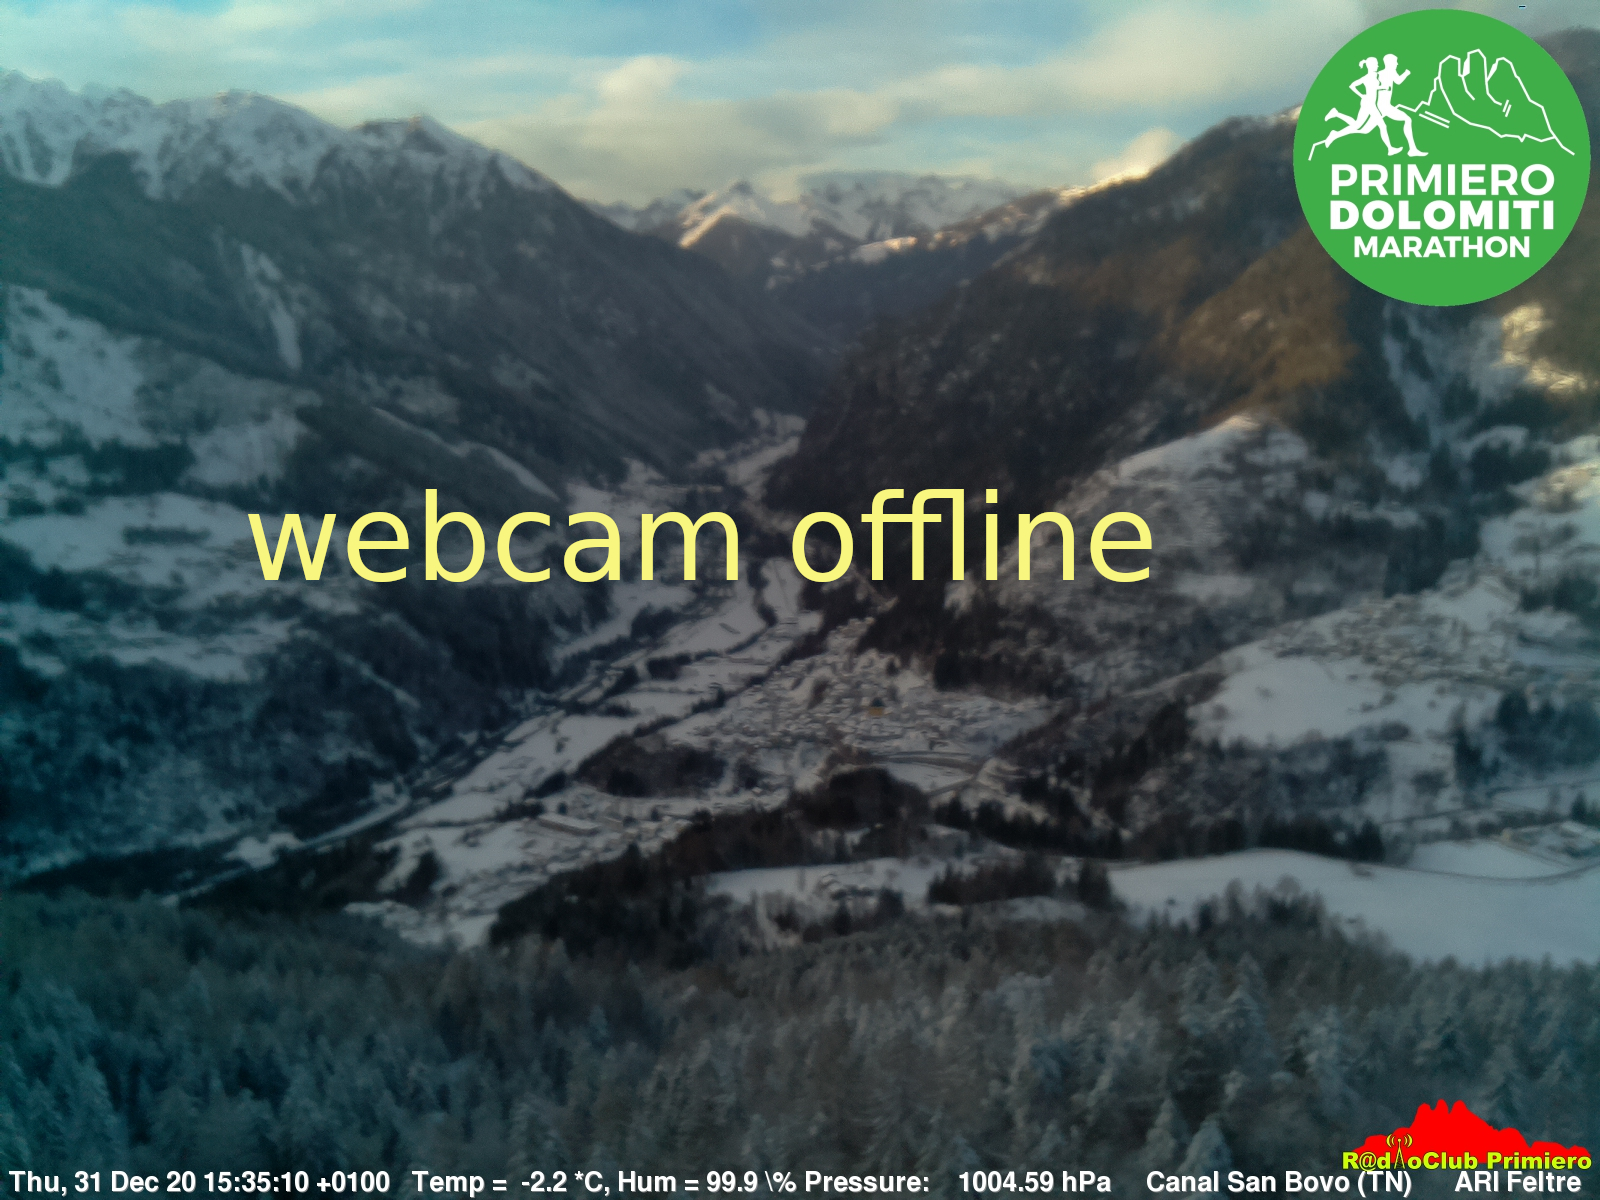 http://www.arifeltre.it/Cam5/webcam.jpg